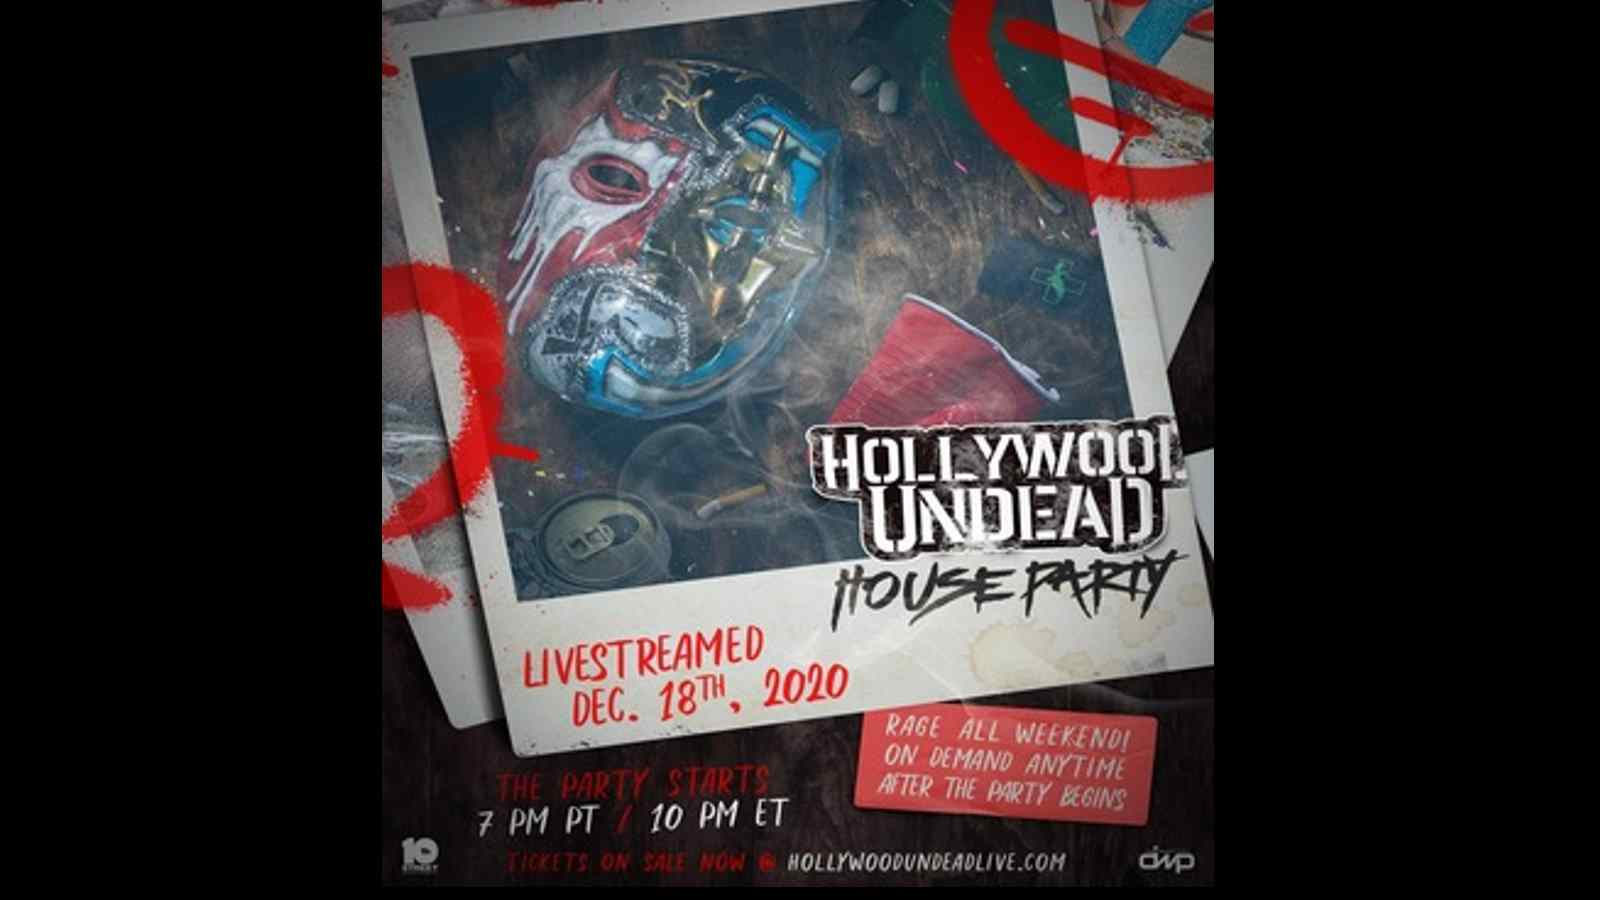 Hollywood Undead Announce House Party Streaming Event